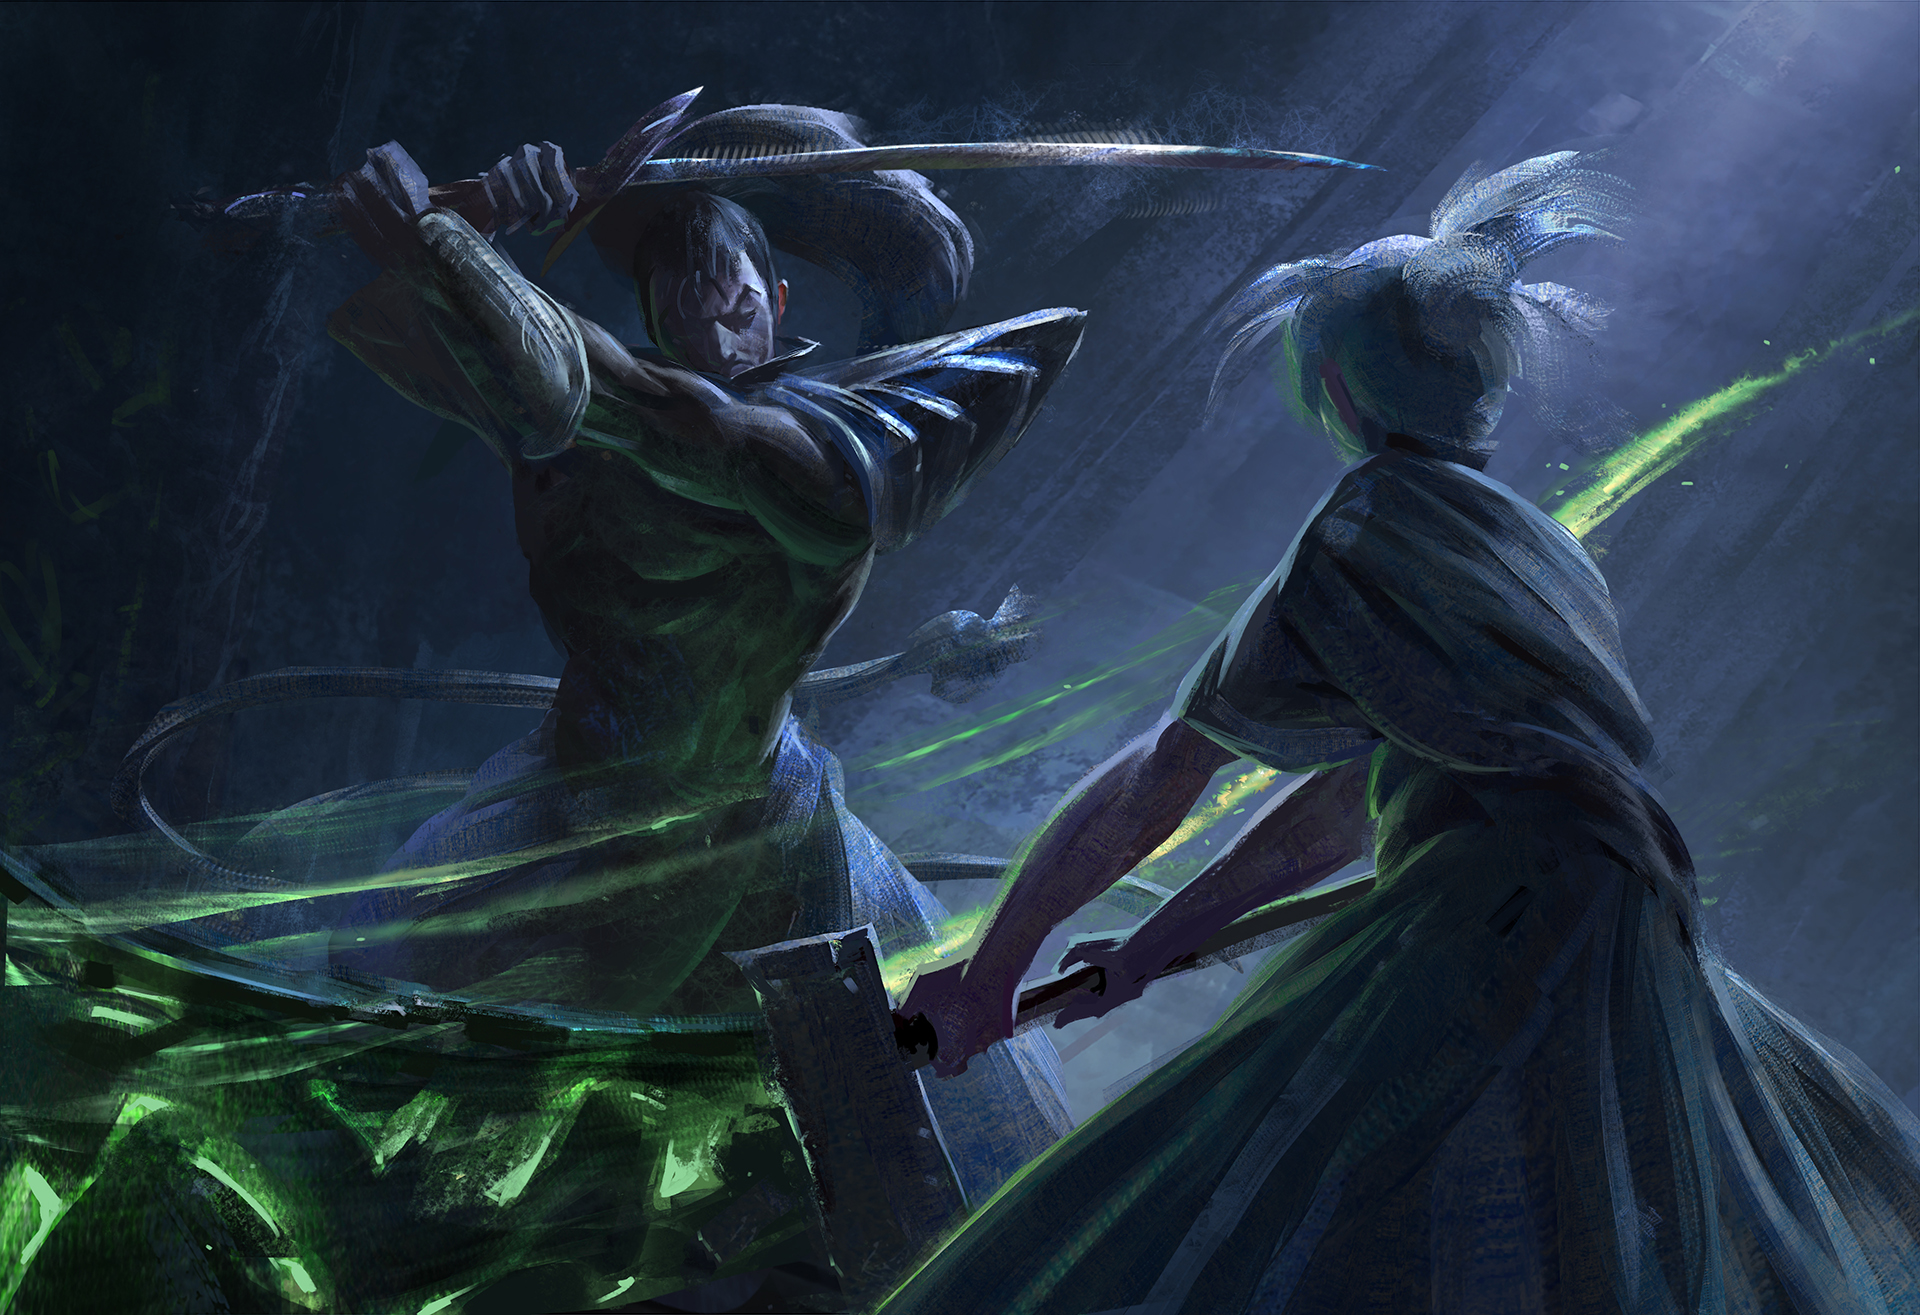 Mitsuyo, The Generation of Light [Approved; 3-1+] [Hazard Rating C] Riven-yasuo-image-part-3